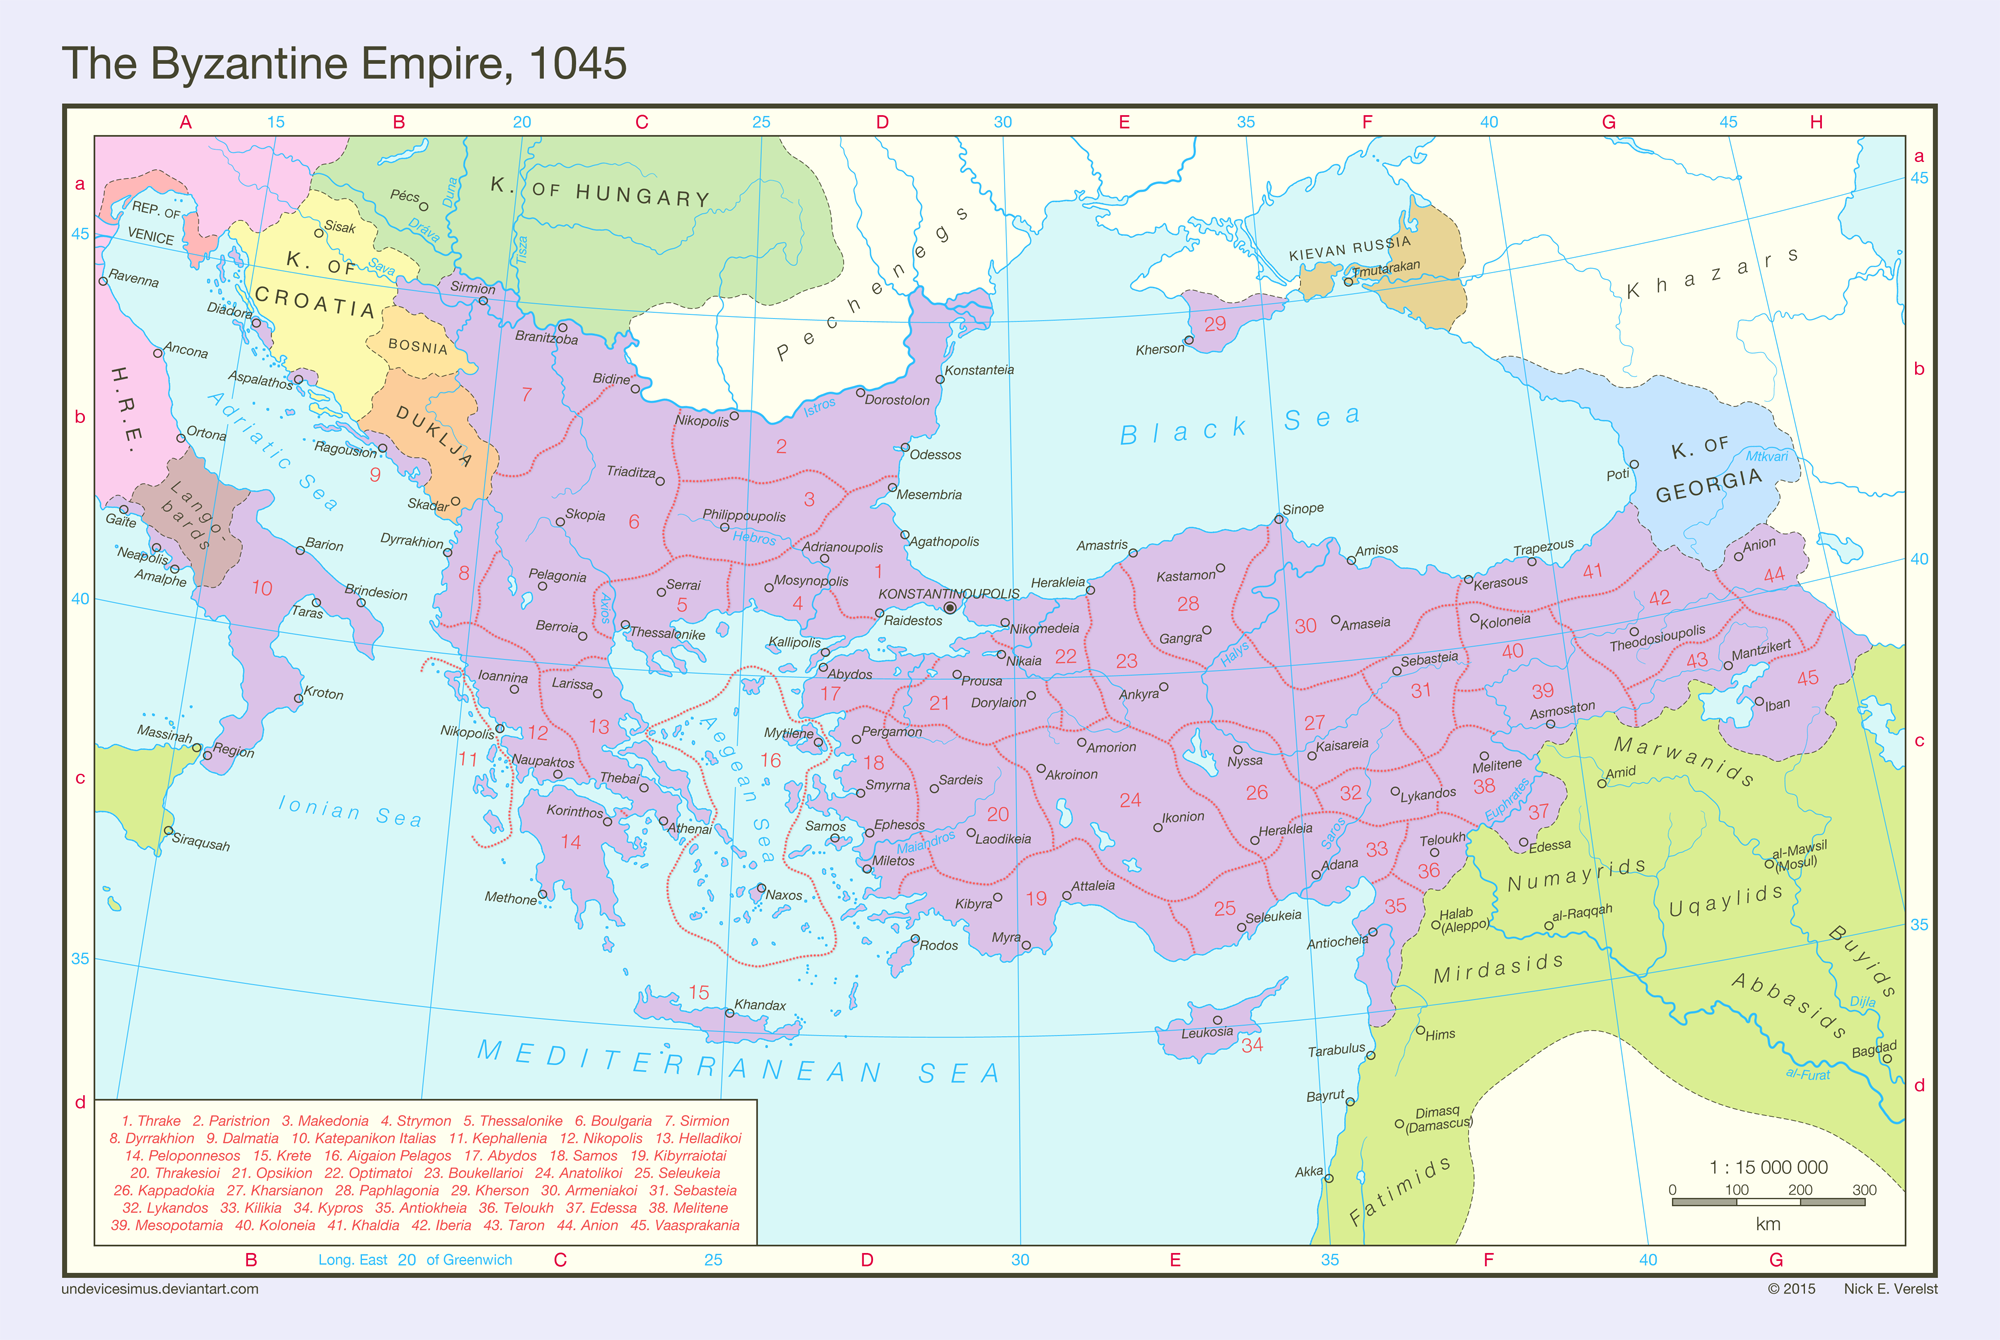 The Byzantine Empire, 1045 by undevicesimus